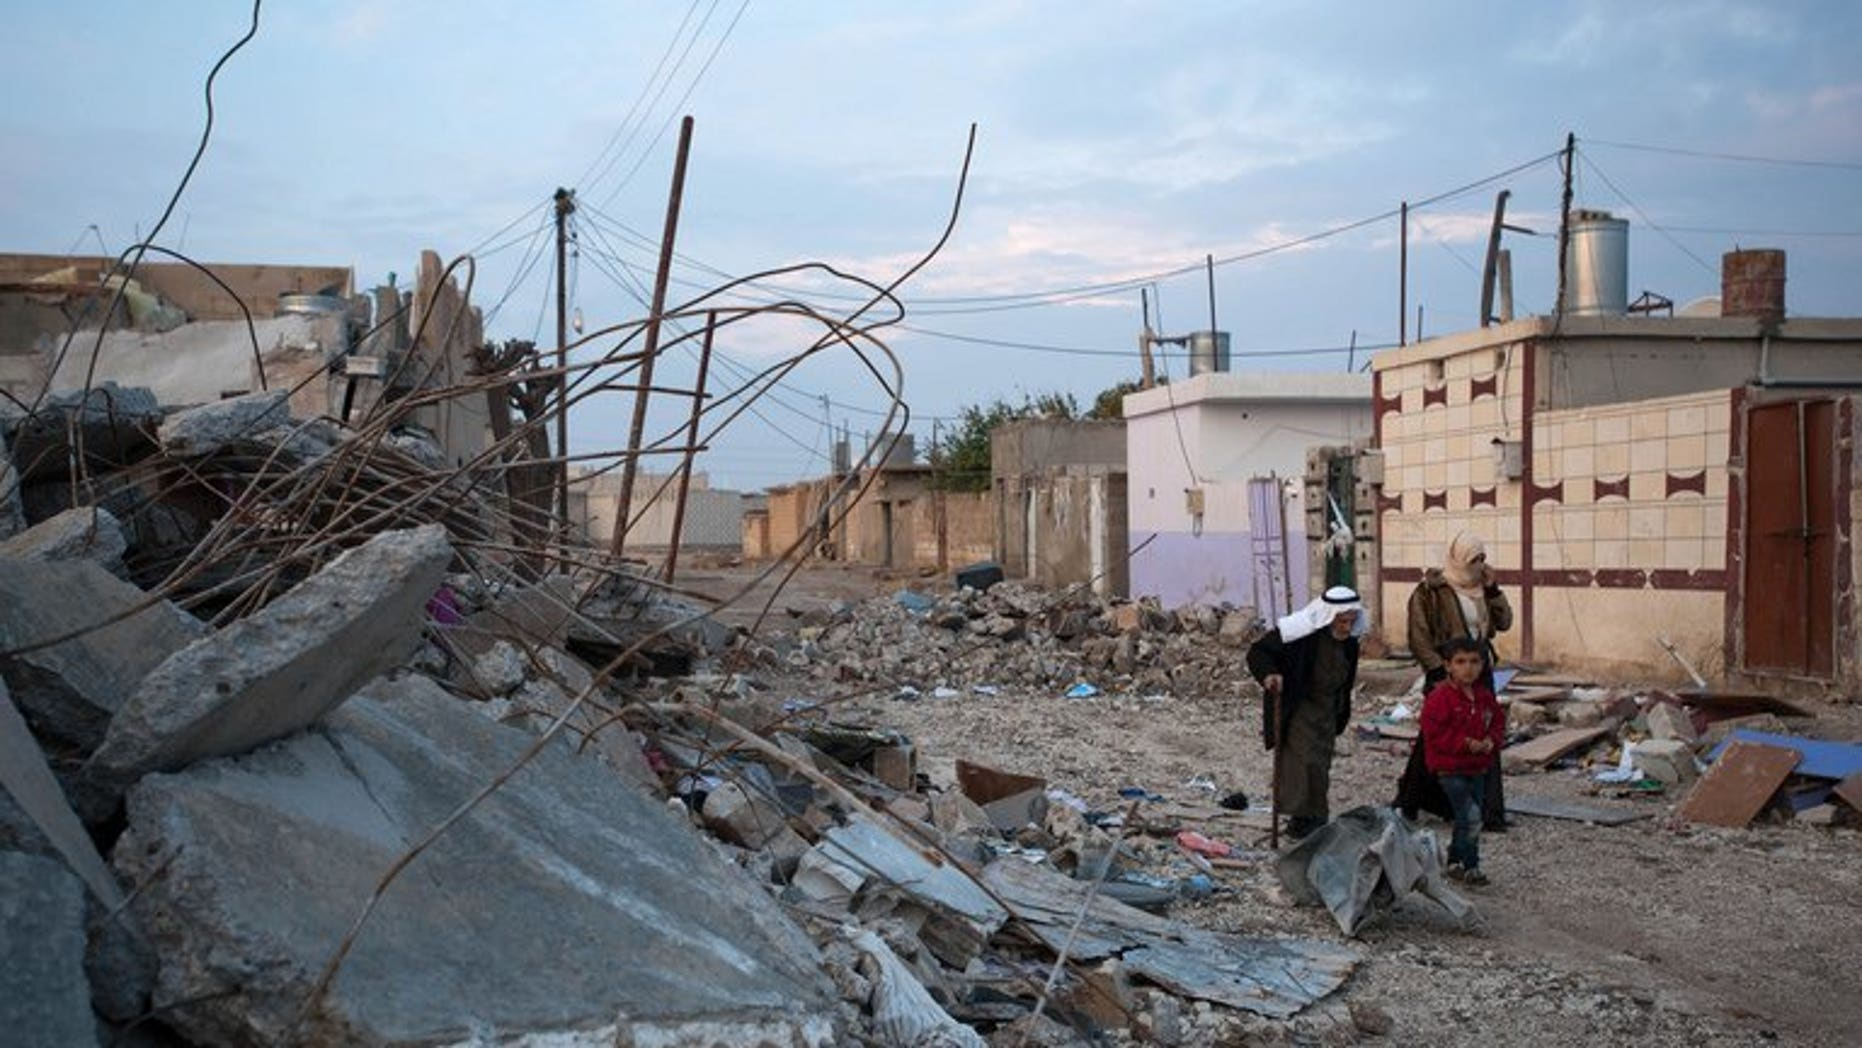 Residents pass by buildings in the Syrian town of Ras al-Ain destroyed in a regime bombardment, November 26, 2012. Kurdish fighters have expelled jihadists from the flashpoint frontier town of Ras al-Ain and well as the nearby border crossing with Turkey, a watchdog said on Wednesday.